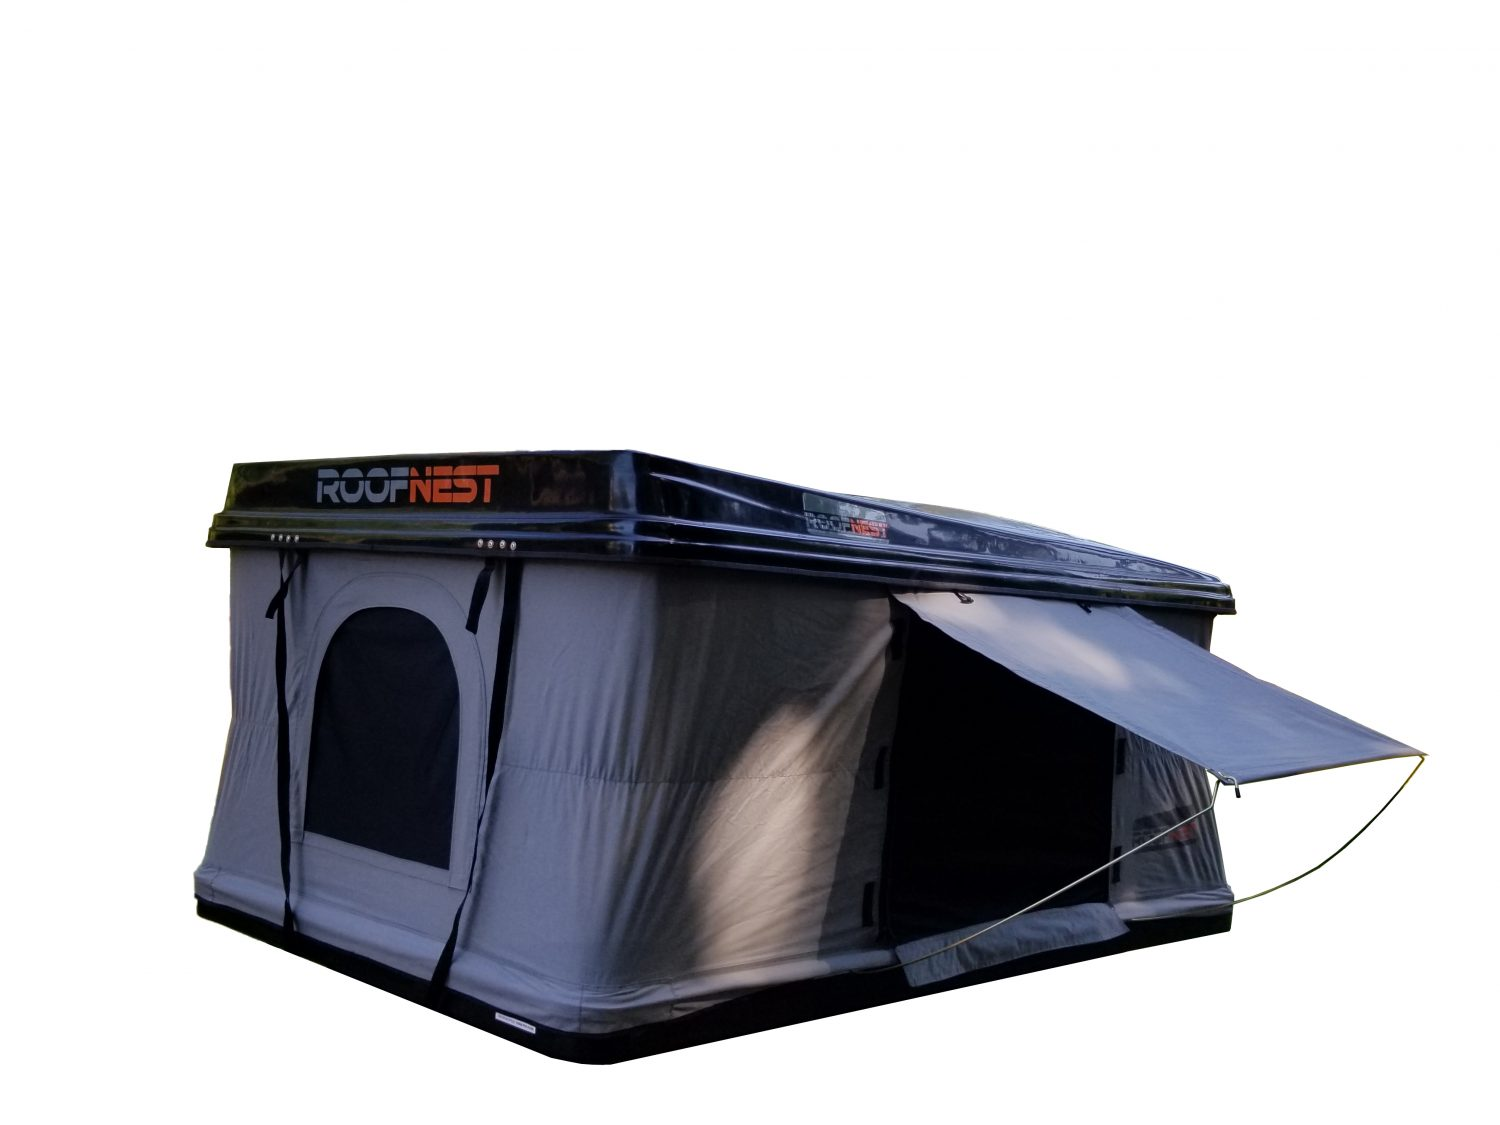 Roof Top Tent Eagle 81 X 55 W/Ladder And Mattress White Roofnest  sc 1 st  Backwoods Overland & Roof Top Tent Eagle 81 X 55 W/Ladder And Mattress White Roofnest ...